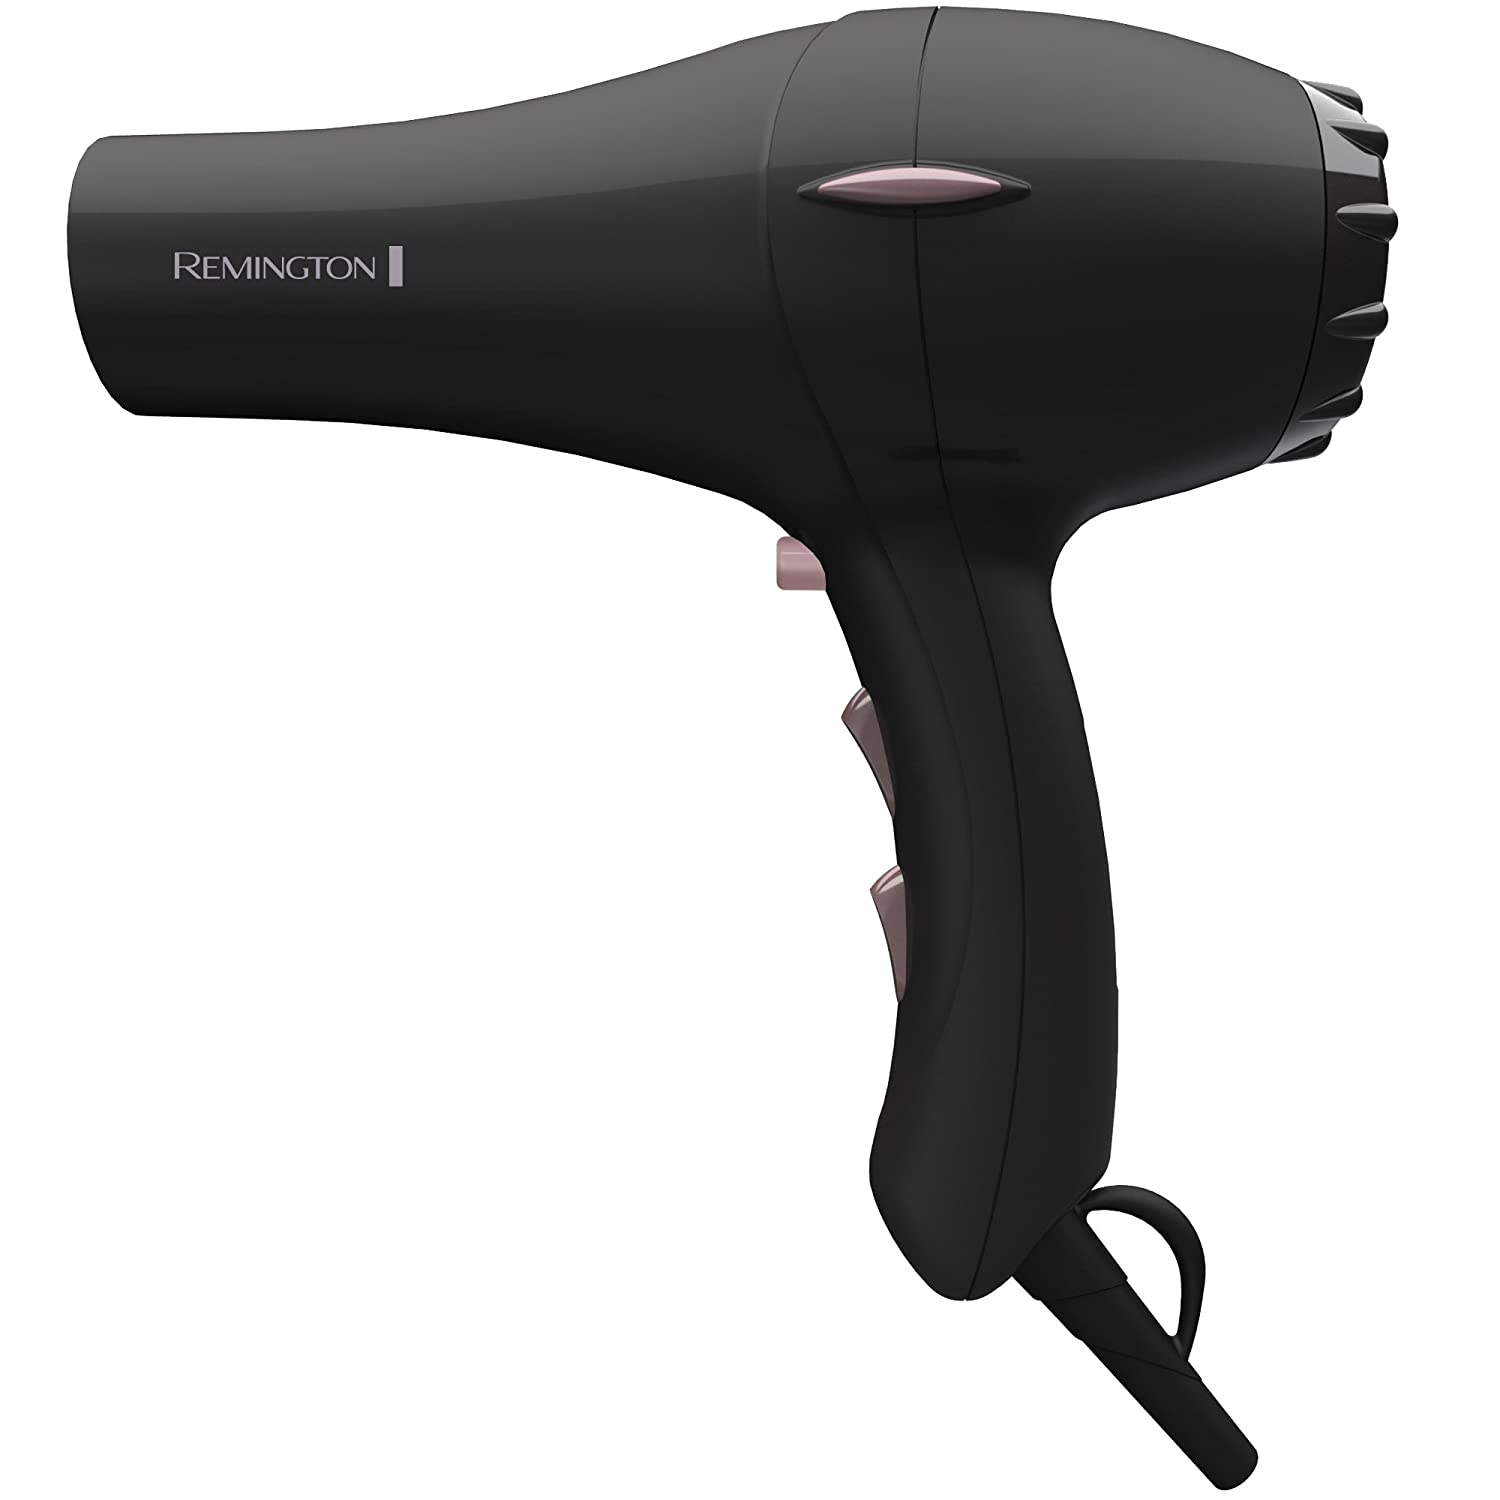 Remington Ac2015 Tstudio Salon Collection Pearl Ceramic Hair Dryer $19.99